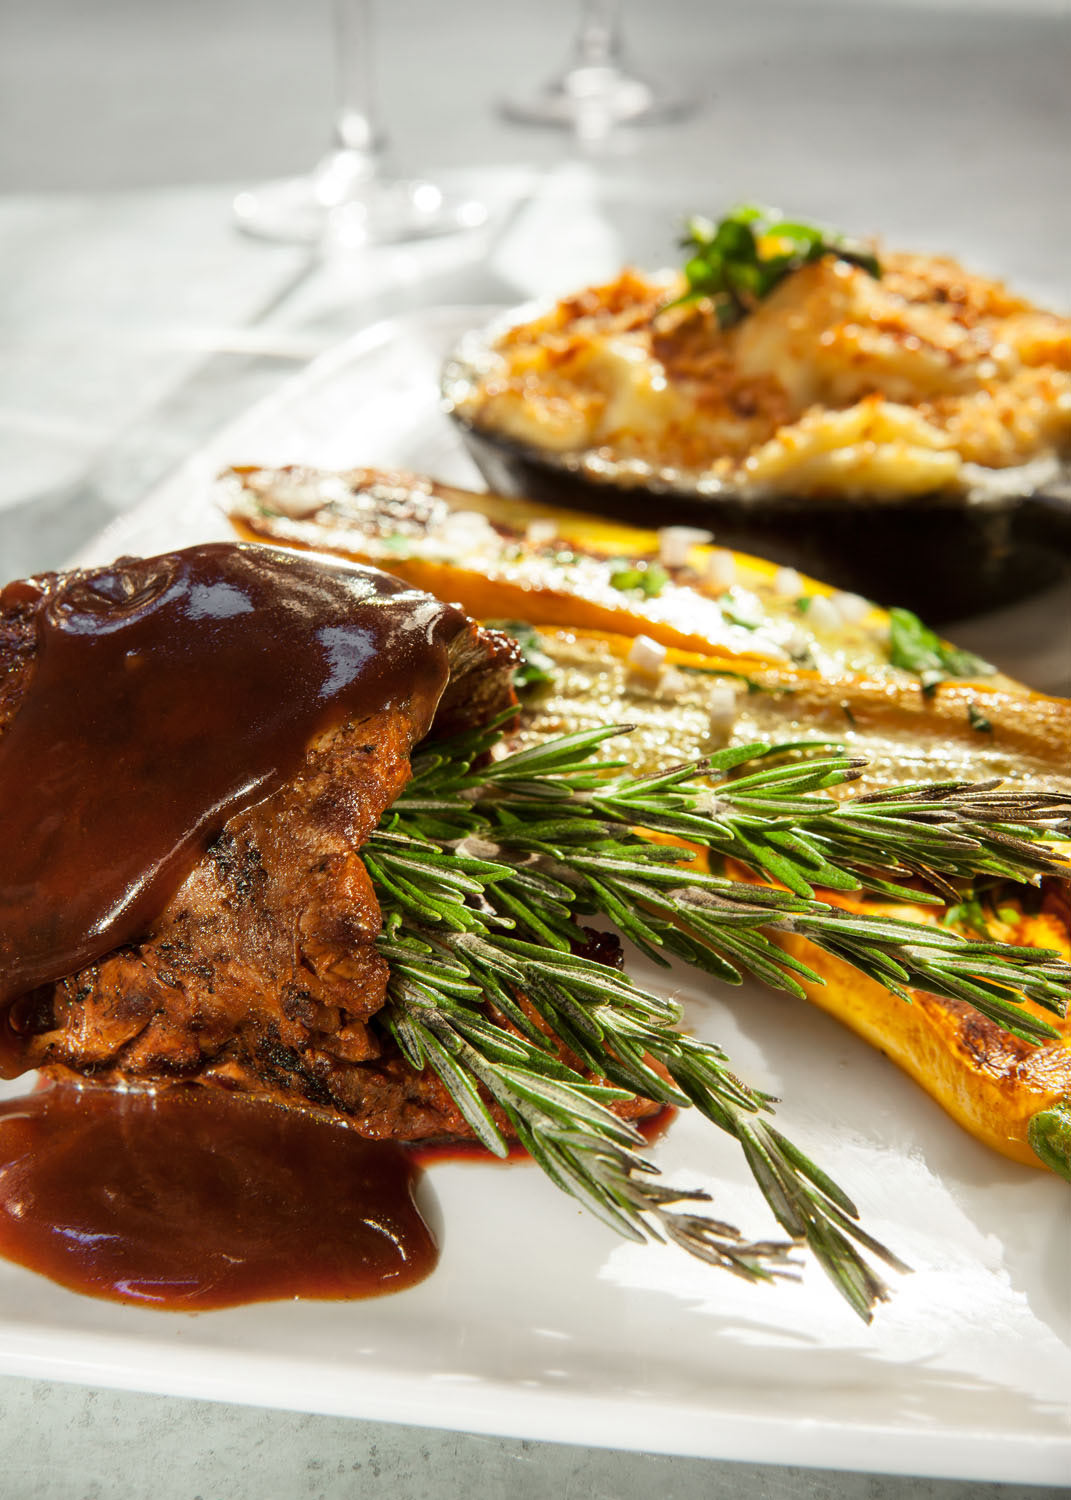 Food_Photography_steak_house_red_wine_bbq_sauce_barbeque_squash.jpg